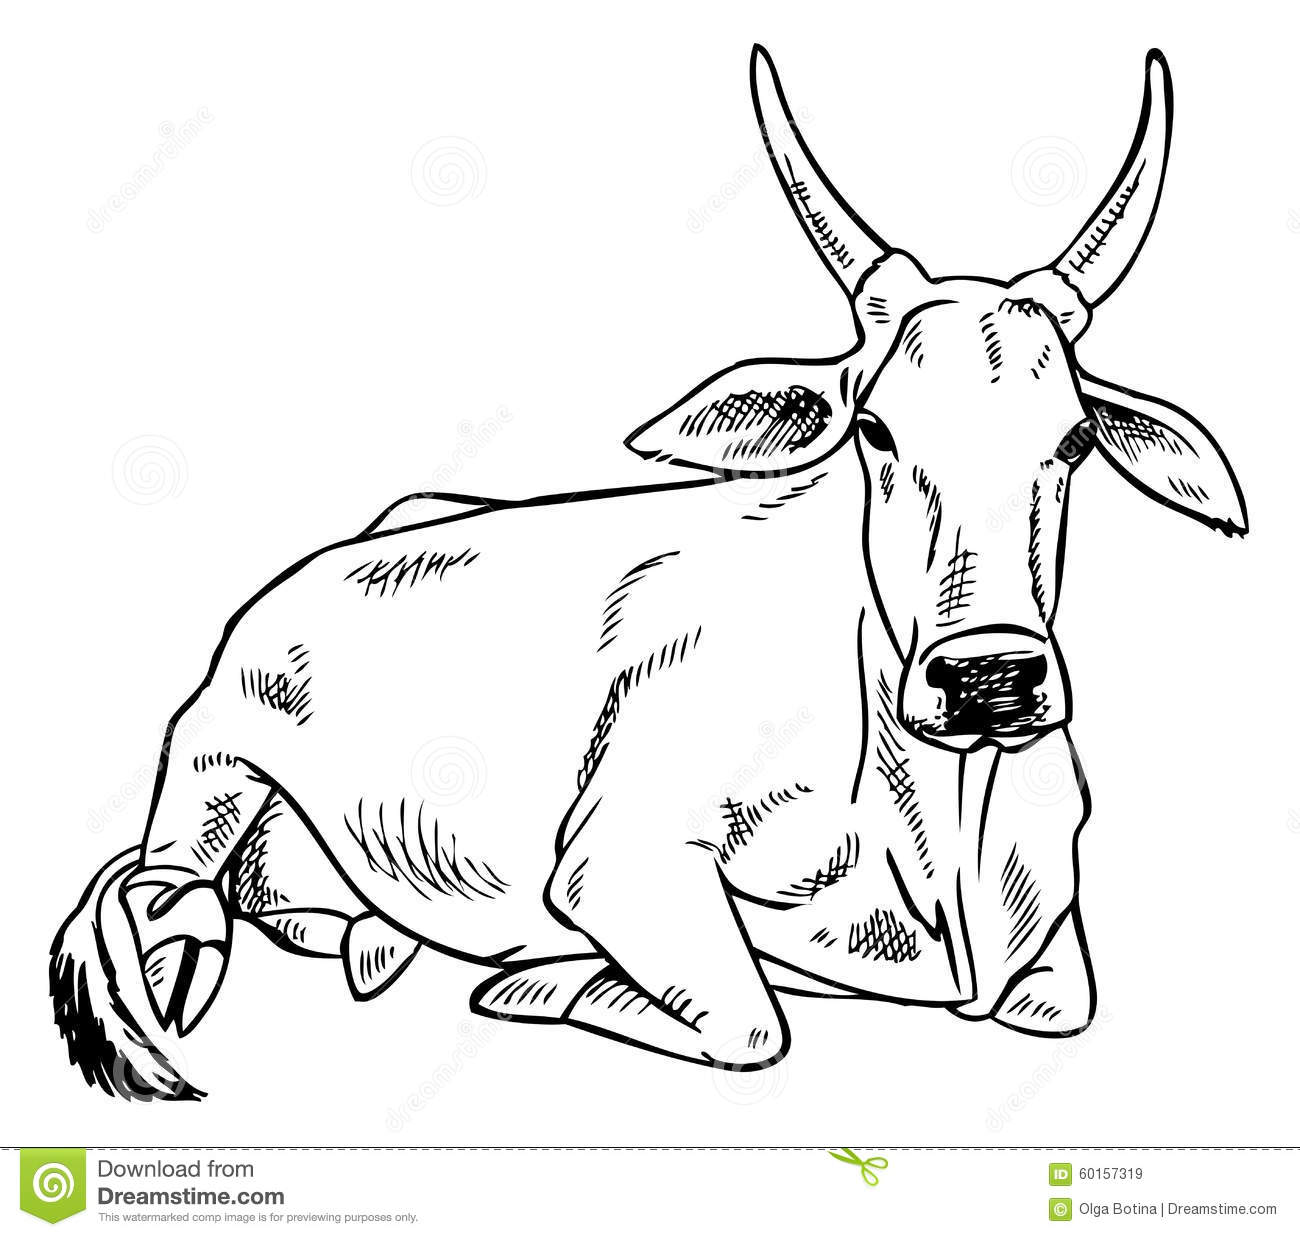 Indian bull clipart - Clipground